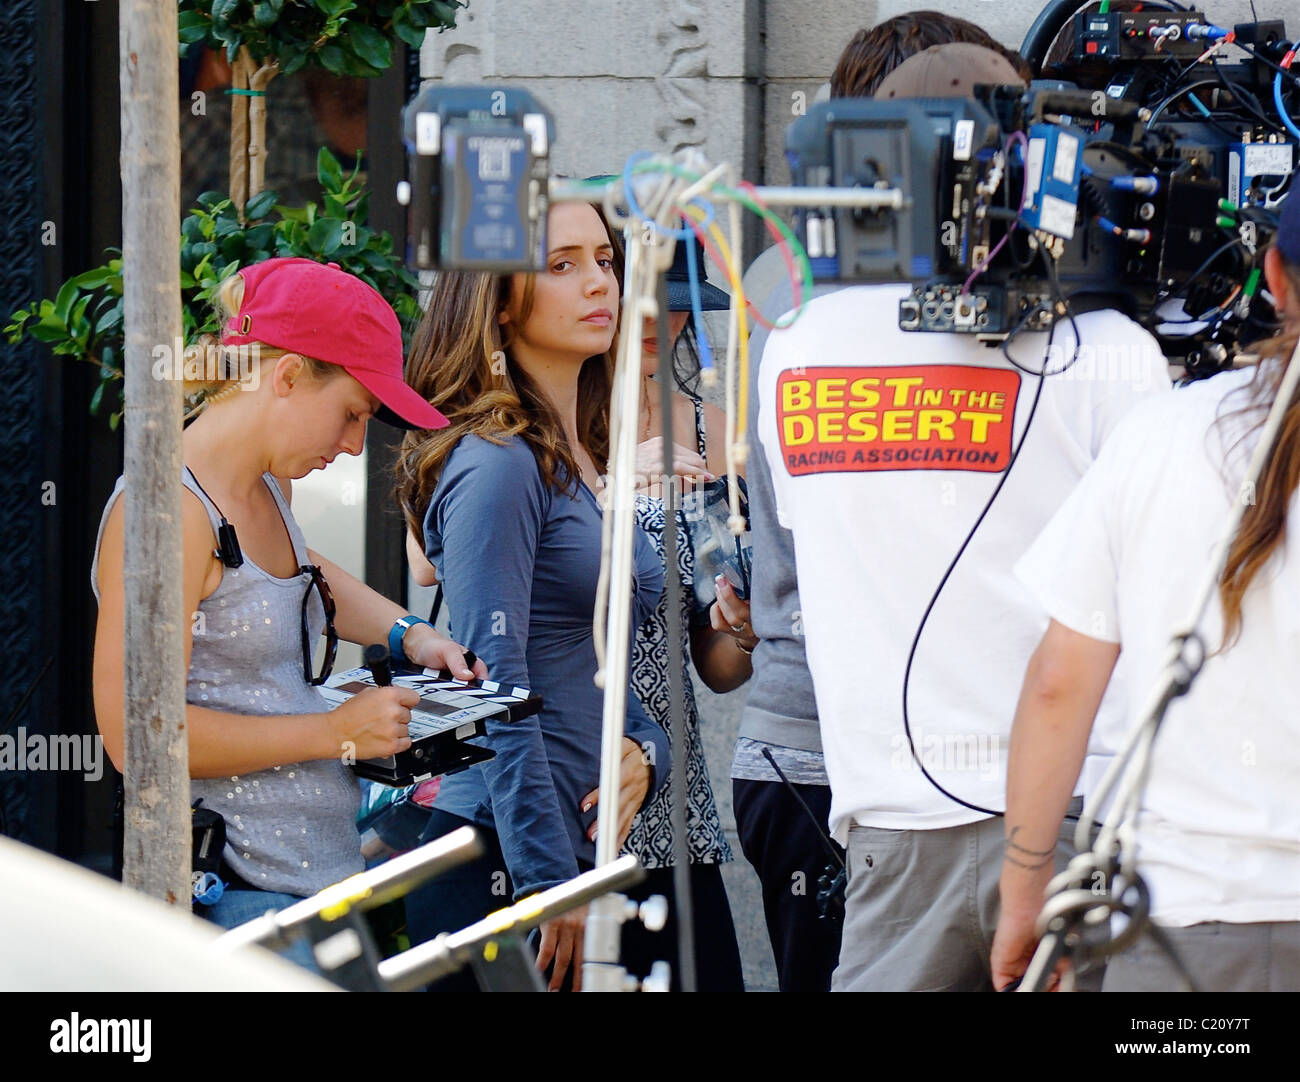 Eliza Dushku Filming Downtown In Los Angeles For Her Tv Series Stock